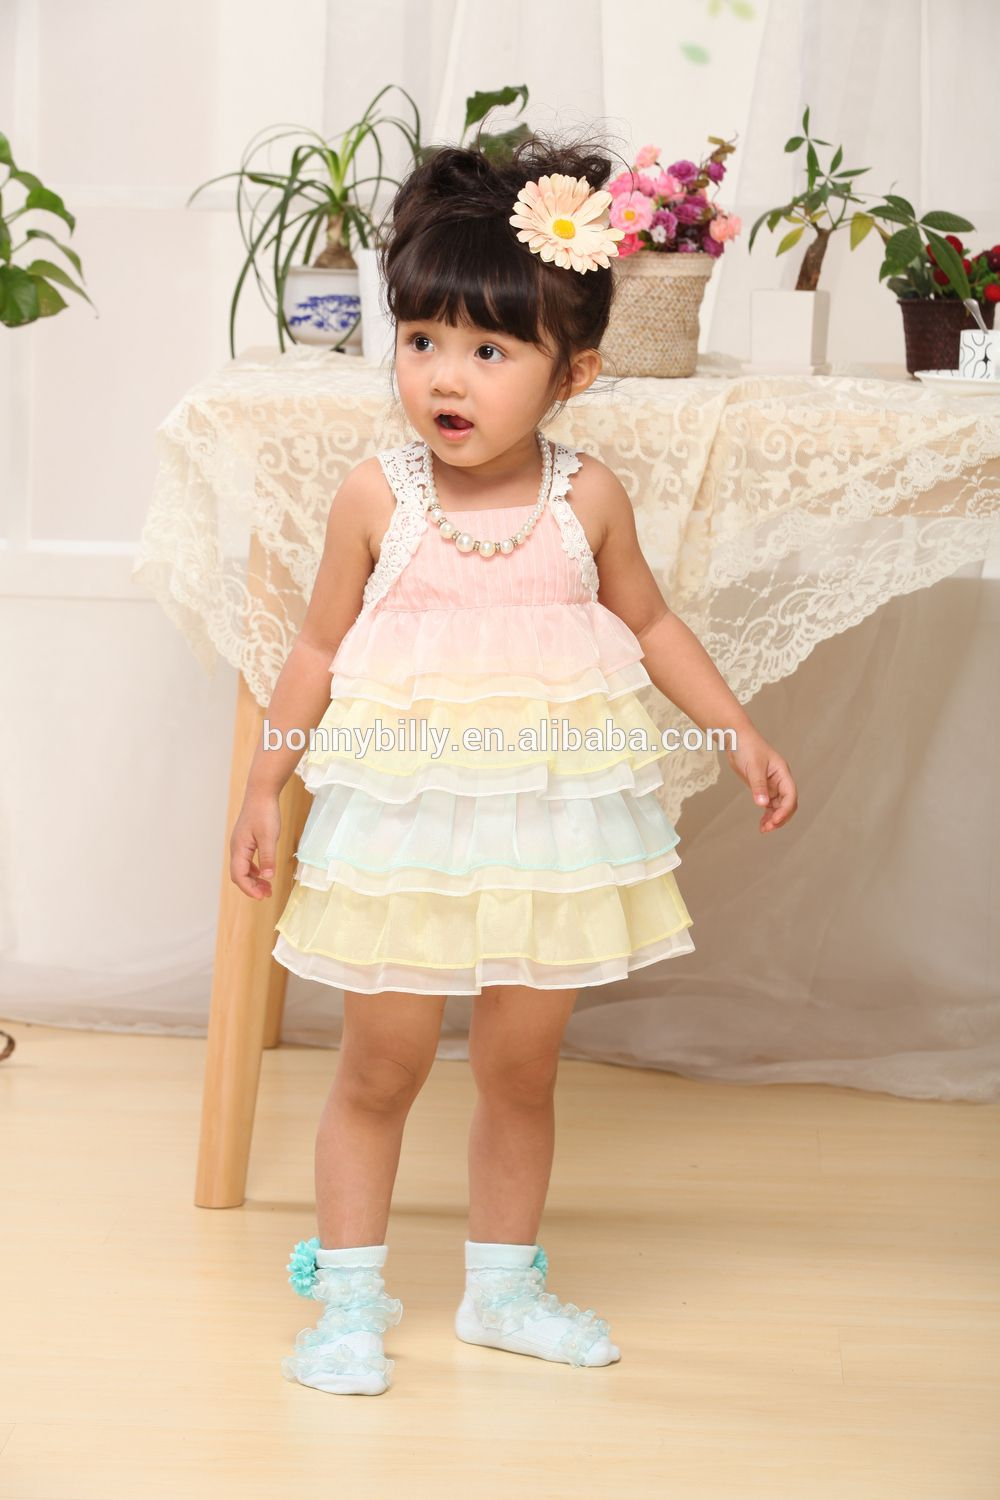 Find great deals on eBay for 1 year old baby girl clothes. Shop with confidence.